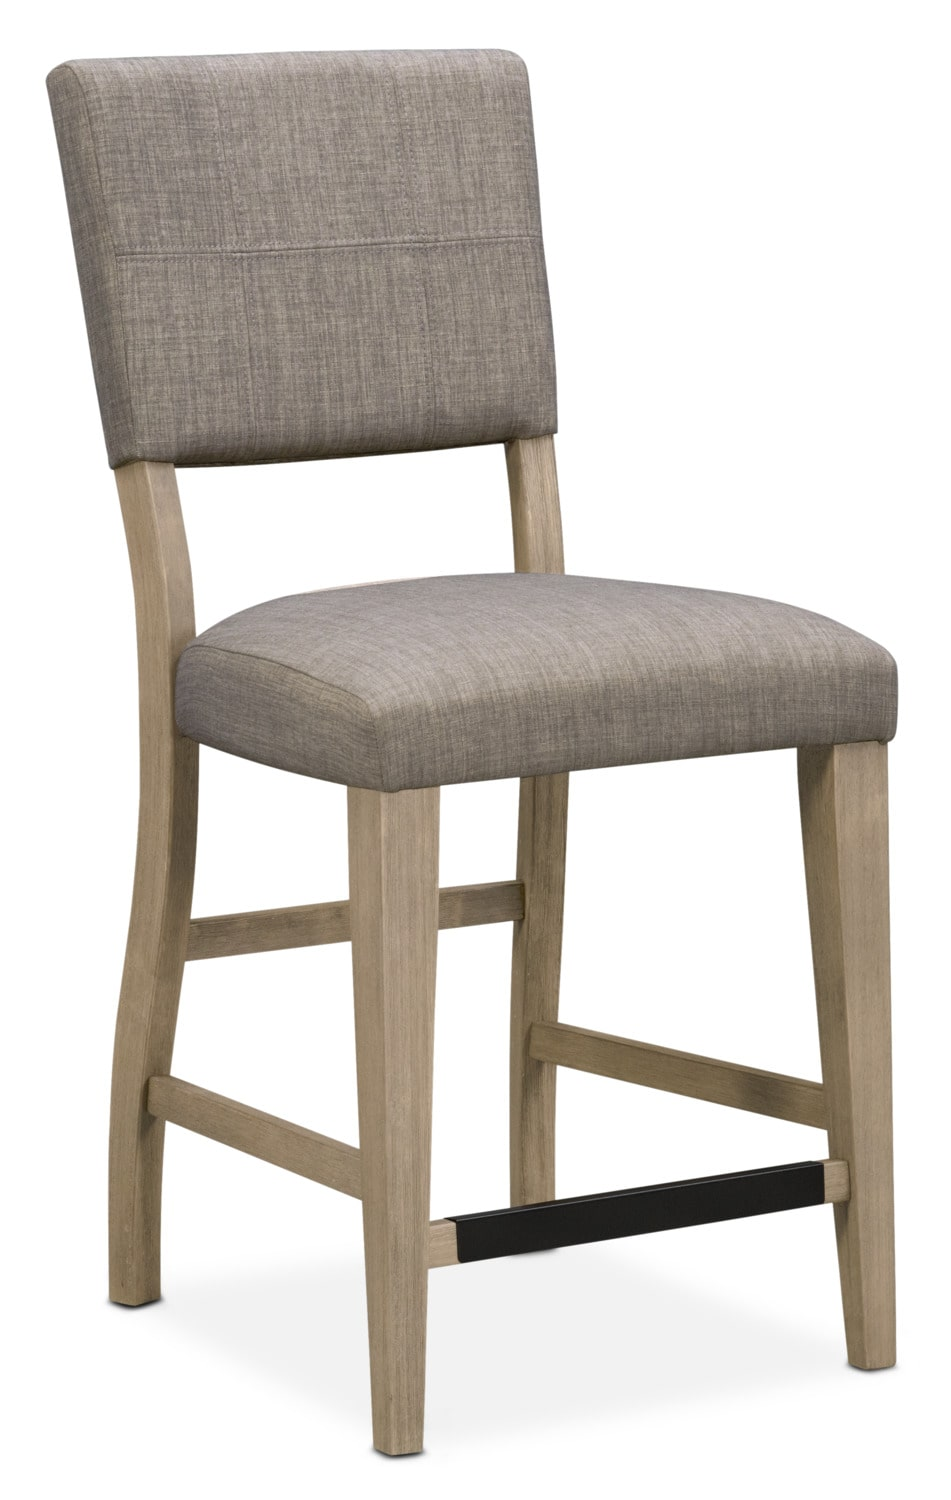 Dining Room Furniture - Tribeca Counter-Height Upholstered Side Chair- Gray